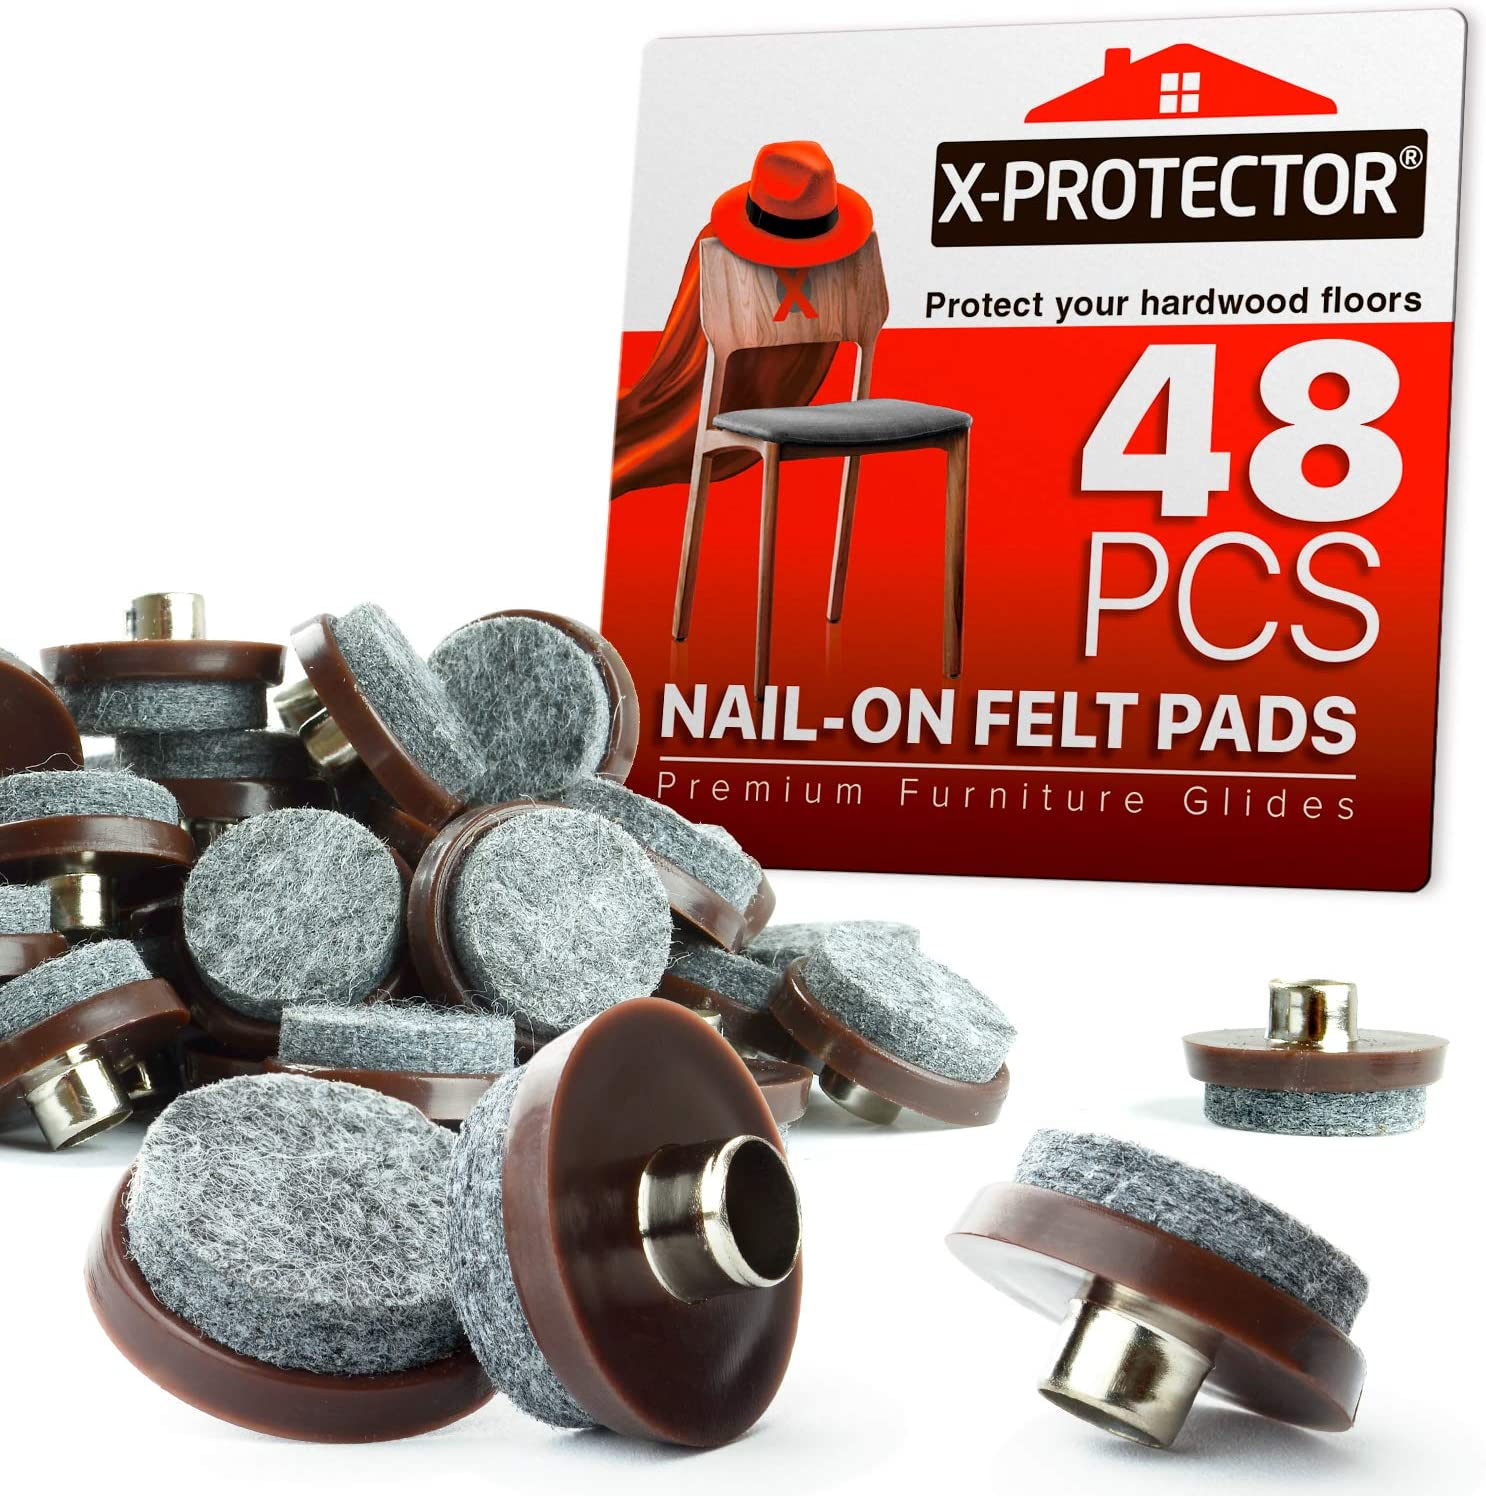 Nail On Felt Pads X-Protector - 48 Felt Furniture Pads – 1